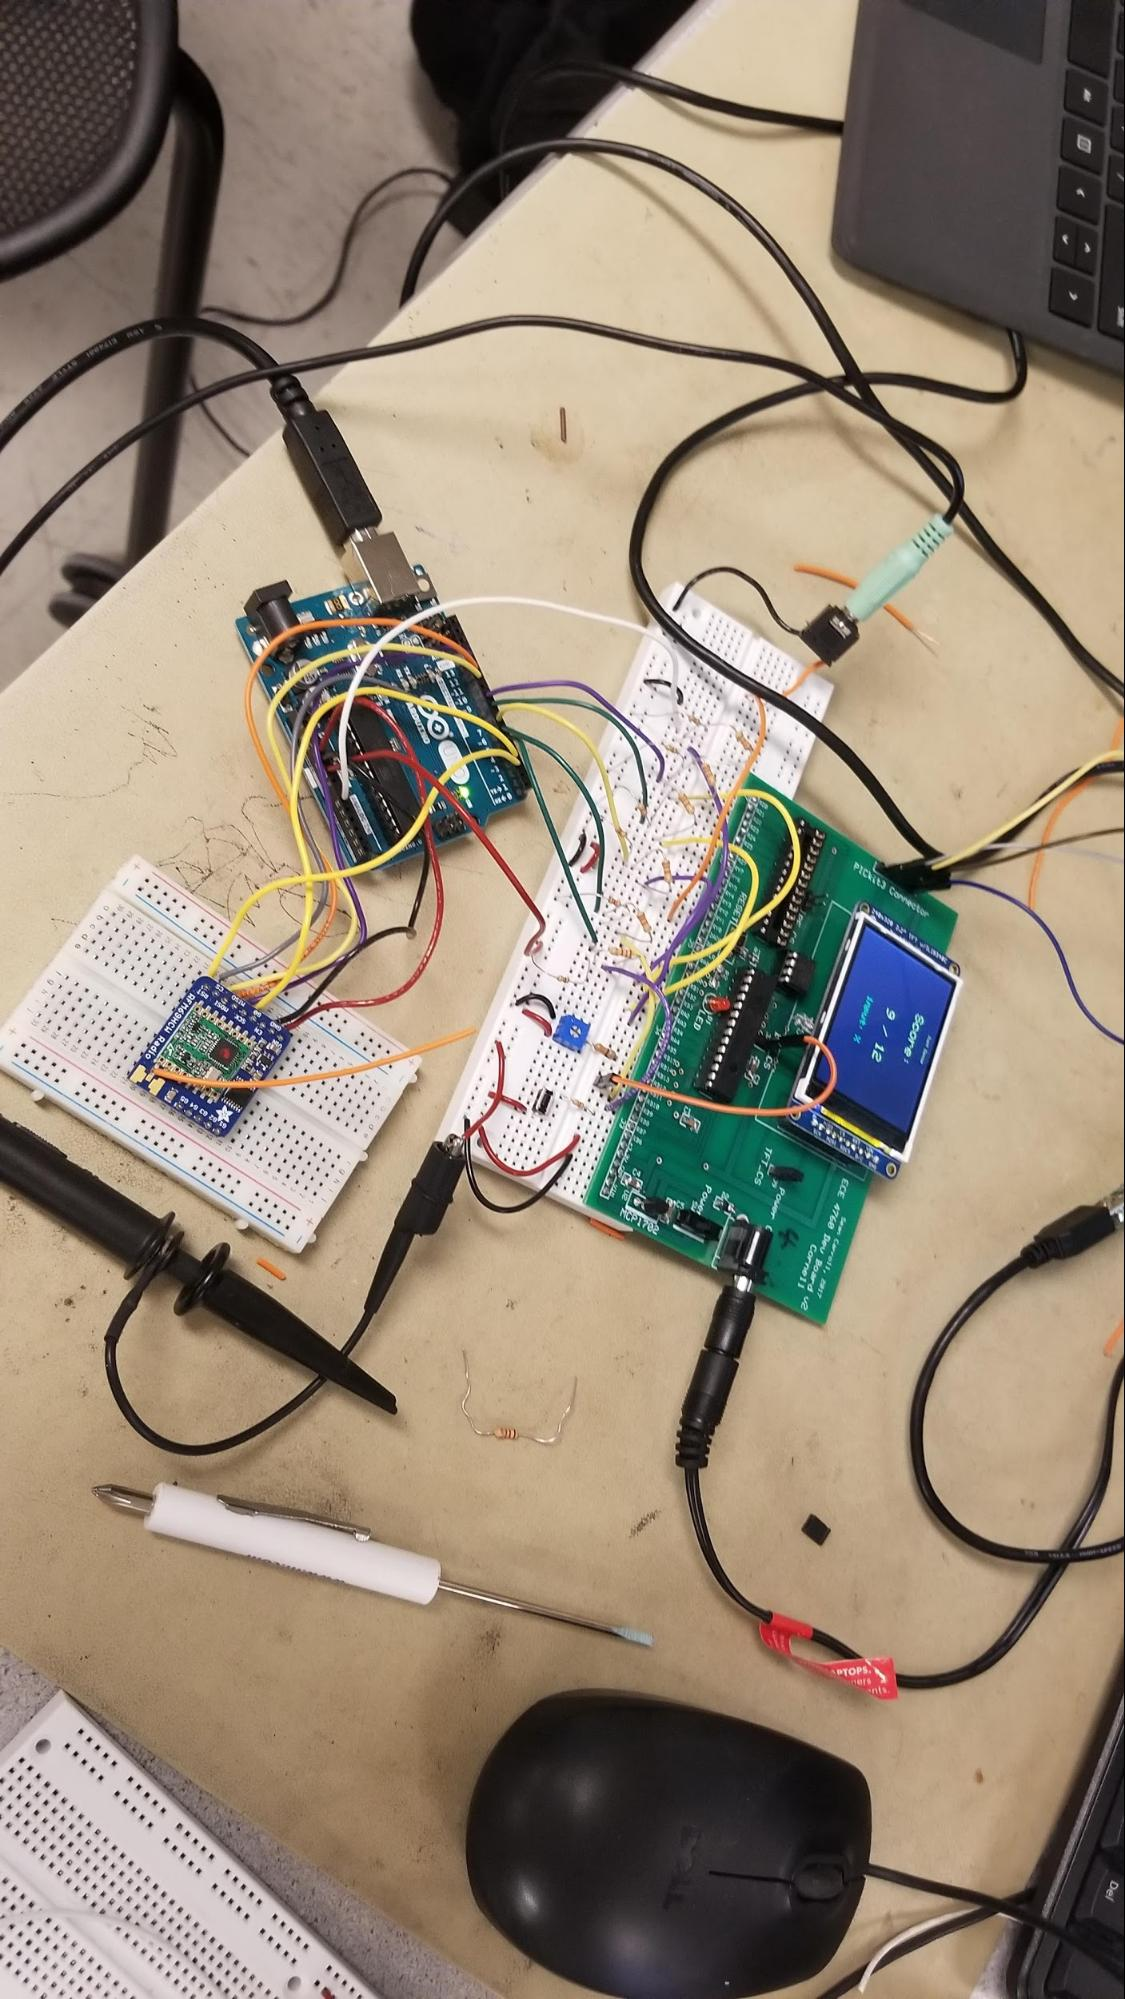 Groovy Times Untethered Rhythm Game Debounce Circuit Of Course Mitigates This Characteristic The Figure 10 Base Station Design Displaying Final Stage Screen